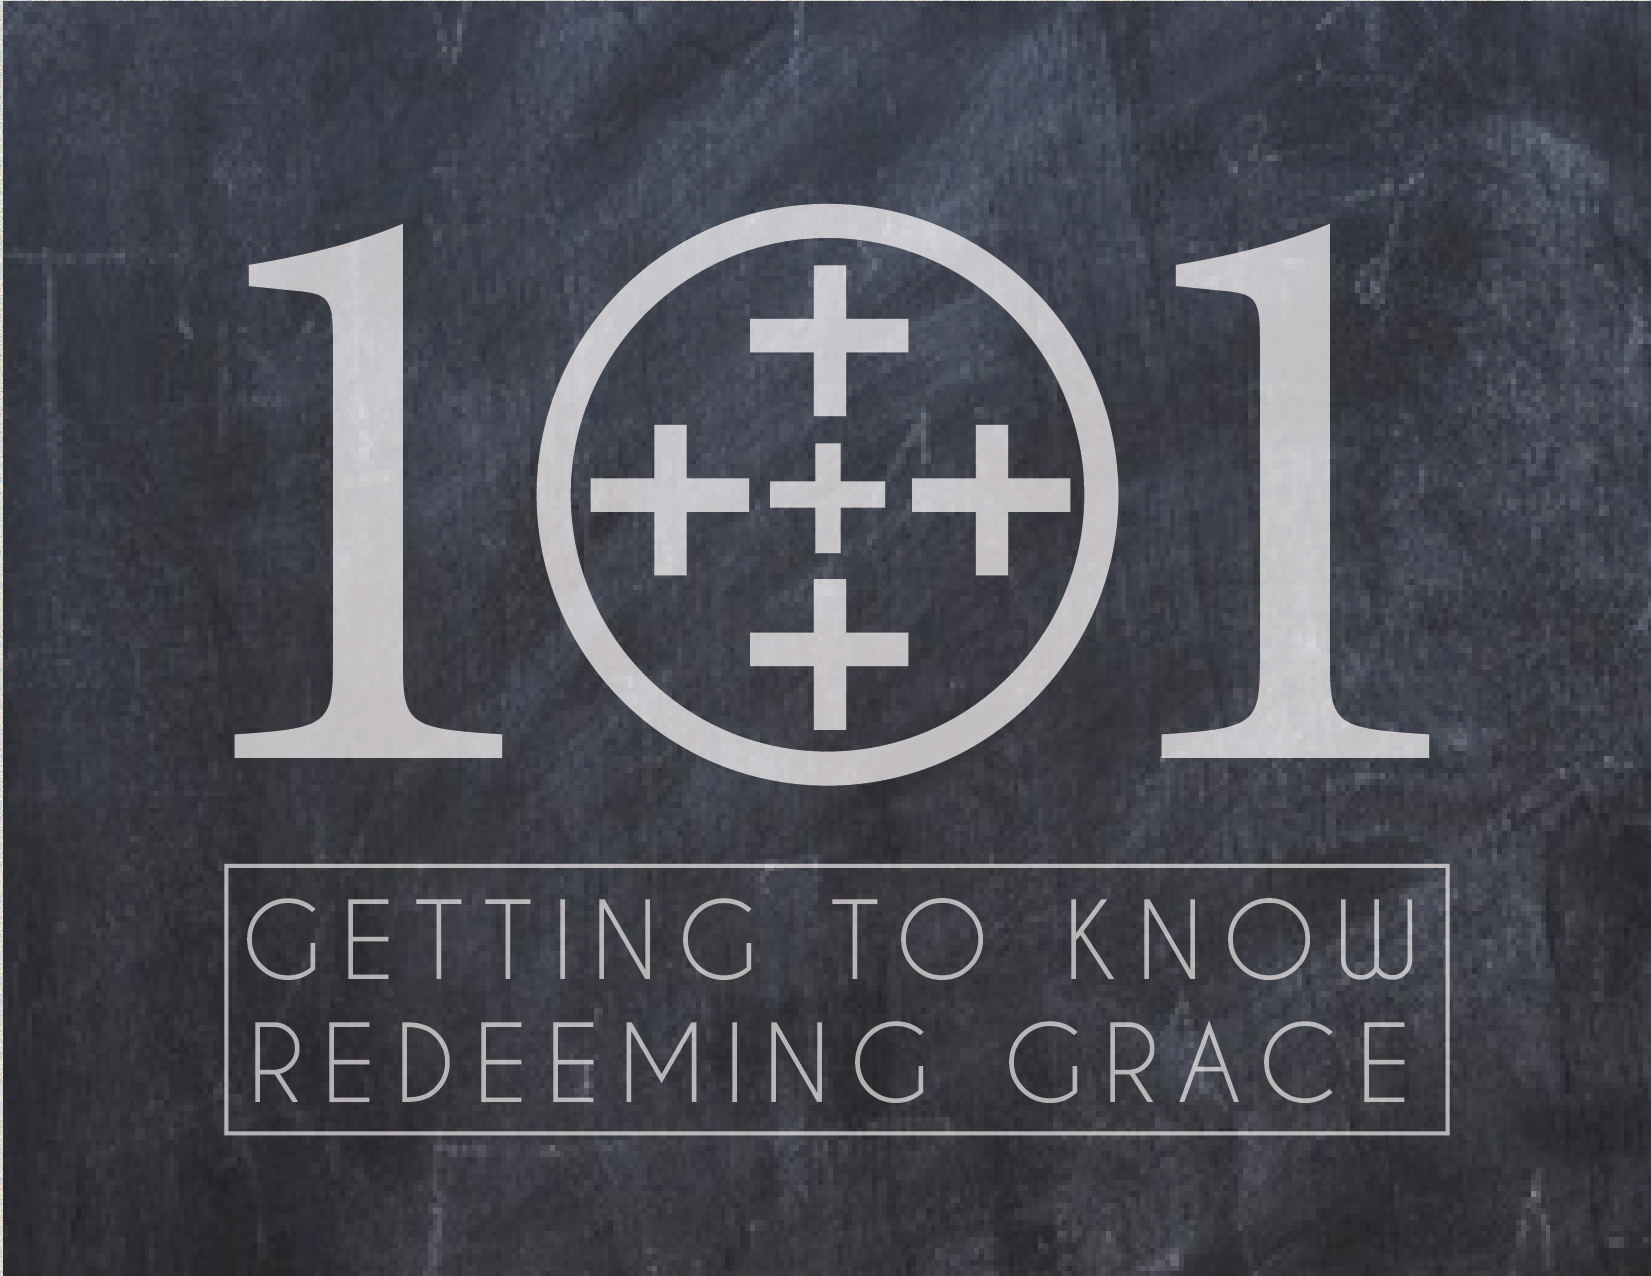 Starting in February 2019, we will be offering our 101 class every first Sunday morning of the month at 9am. This class is for anyone who would like to know more about the church, get to know our staff, and is considering membership at RGCC. A light breakfast will be provided! If you'd like to sign up for a class, click  here .